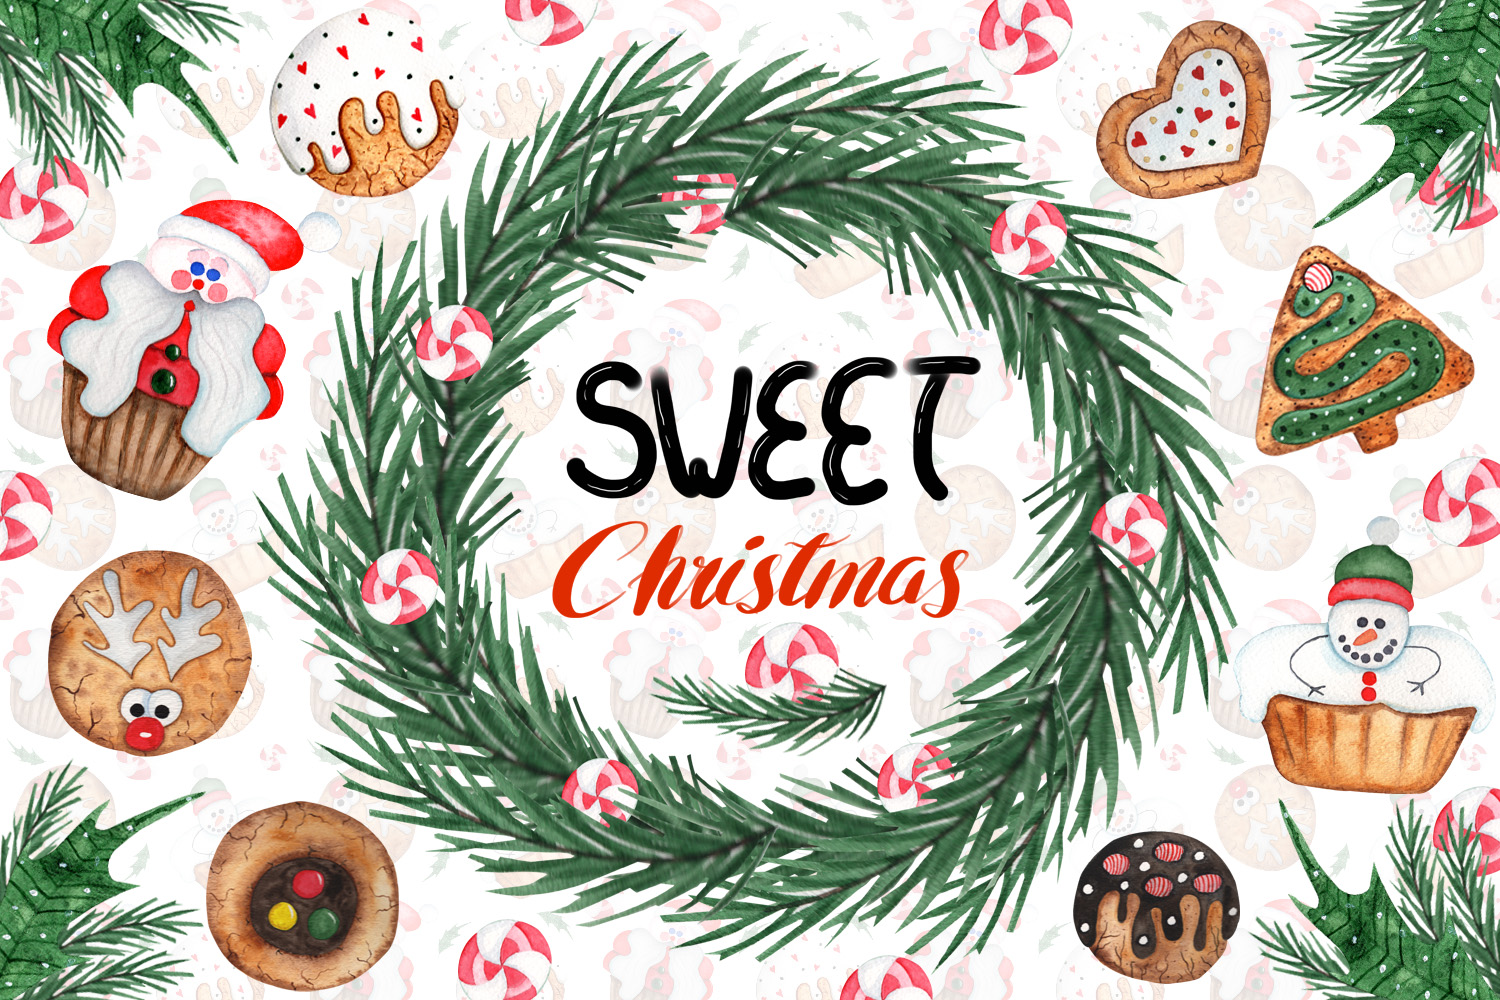 Download Free Watercolor Sweet Christmas Cookies Graphic By Tanatadesign for Cricut Explore, Silhouette and other cutting machines.